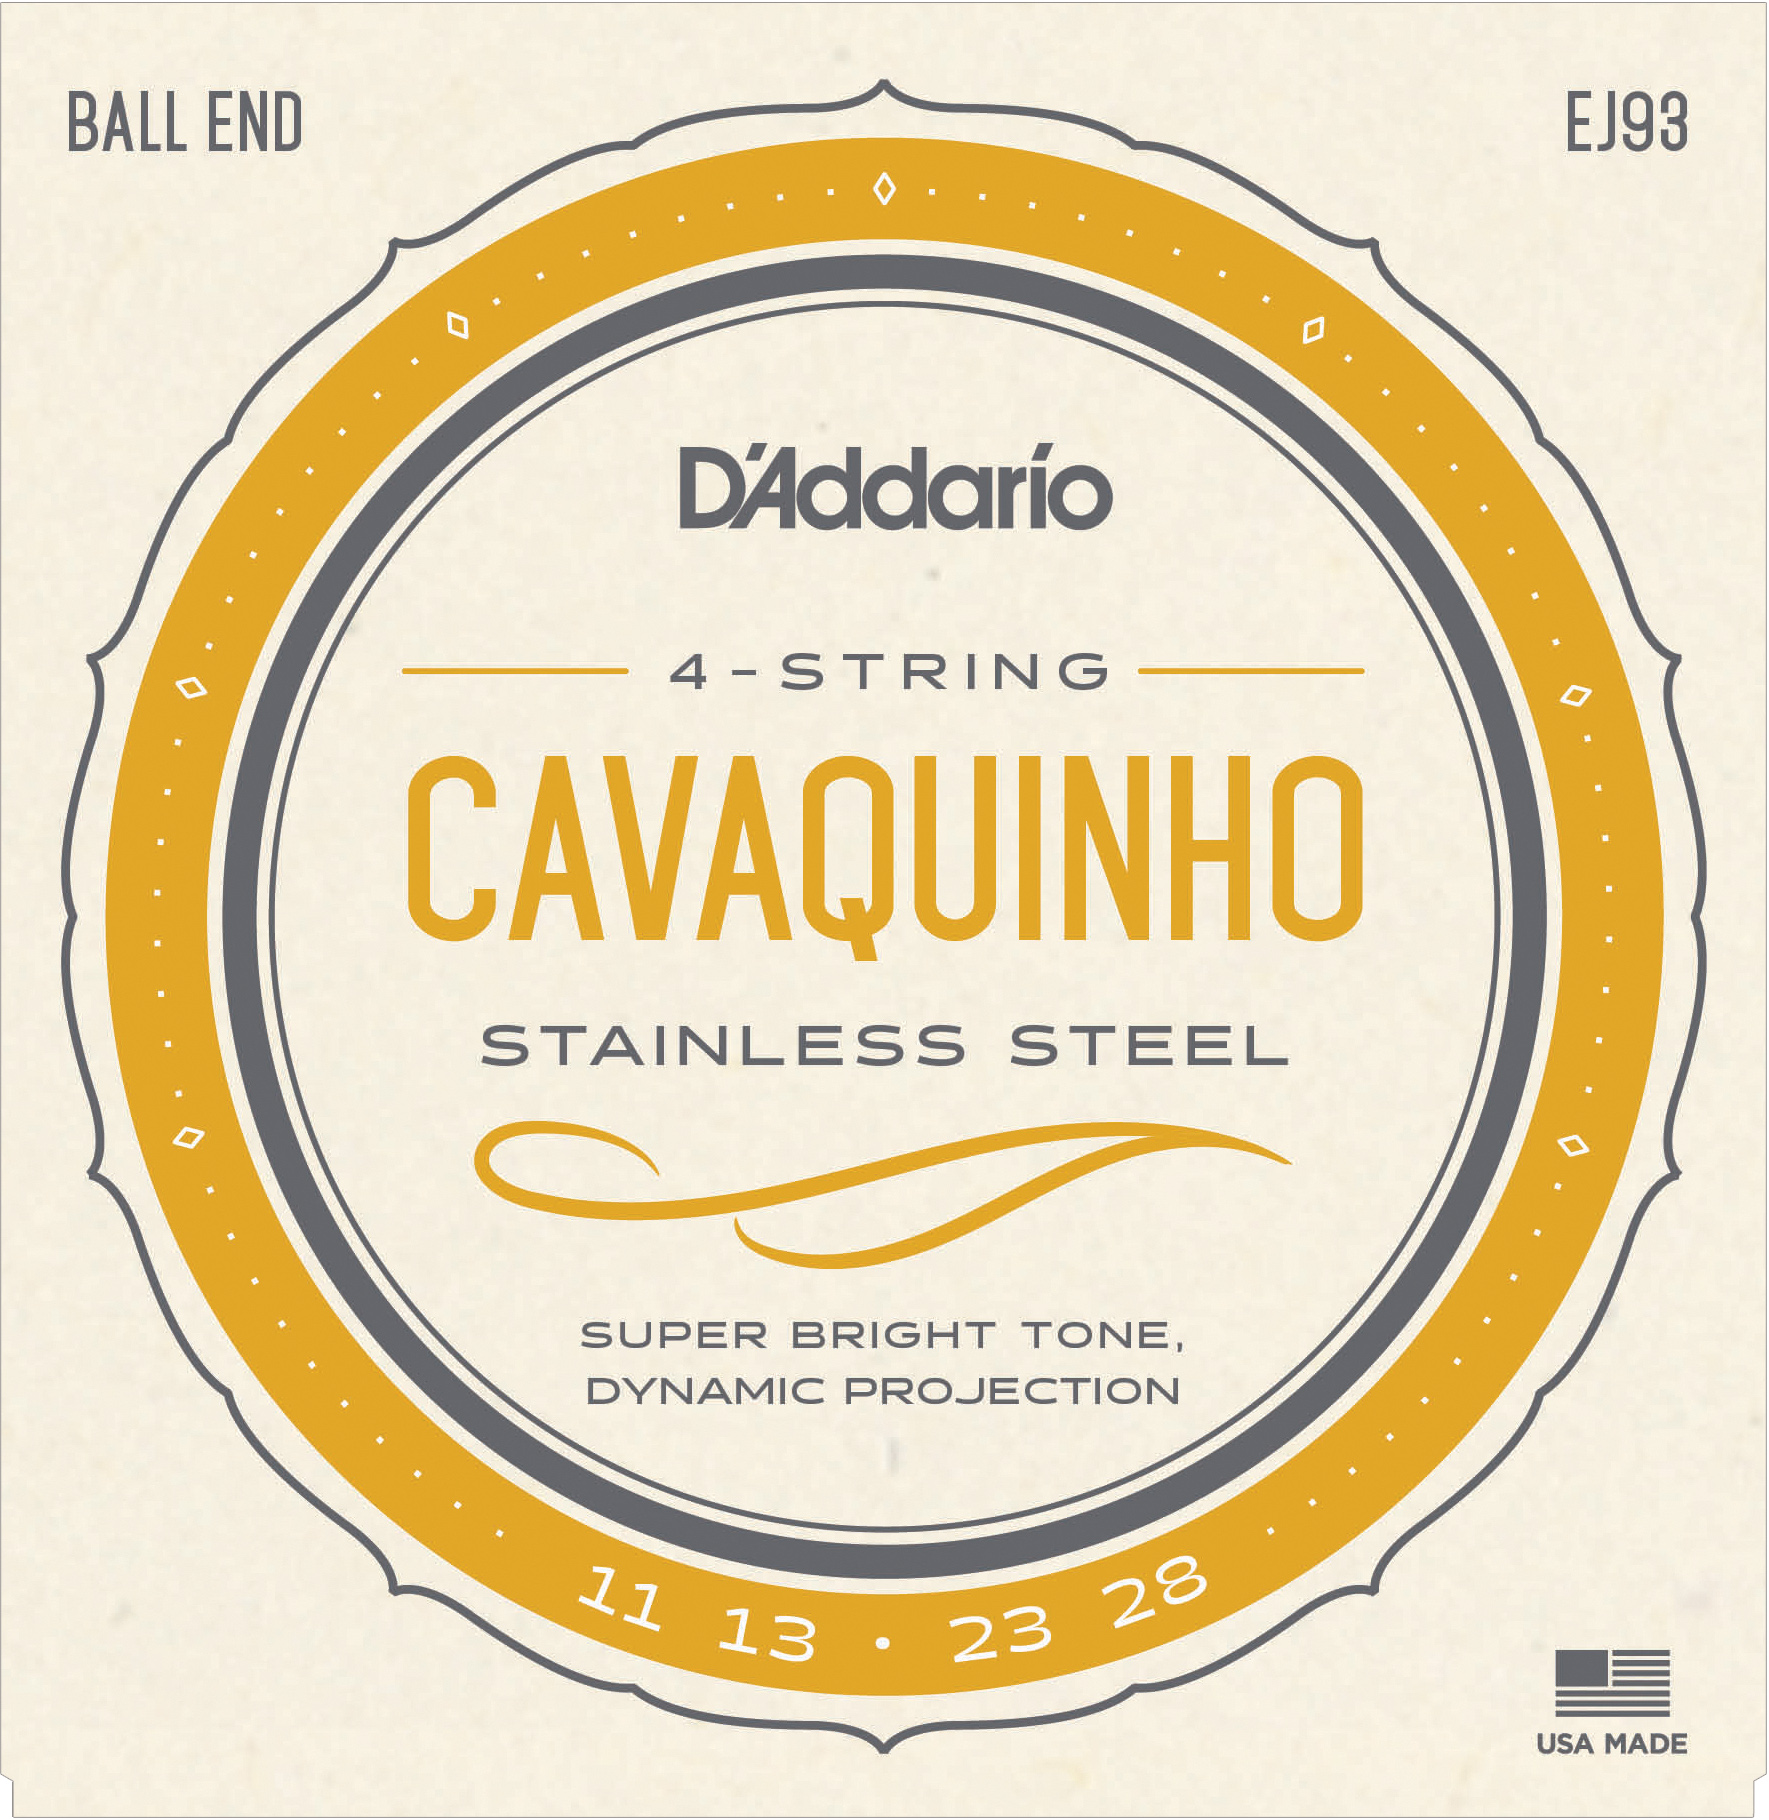 D'Addario Stainless Steel Wound EJ93 Cavaquinho Strings, Ball End, 11-28